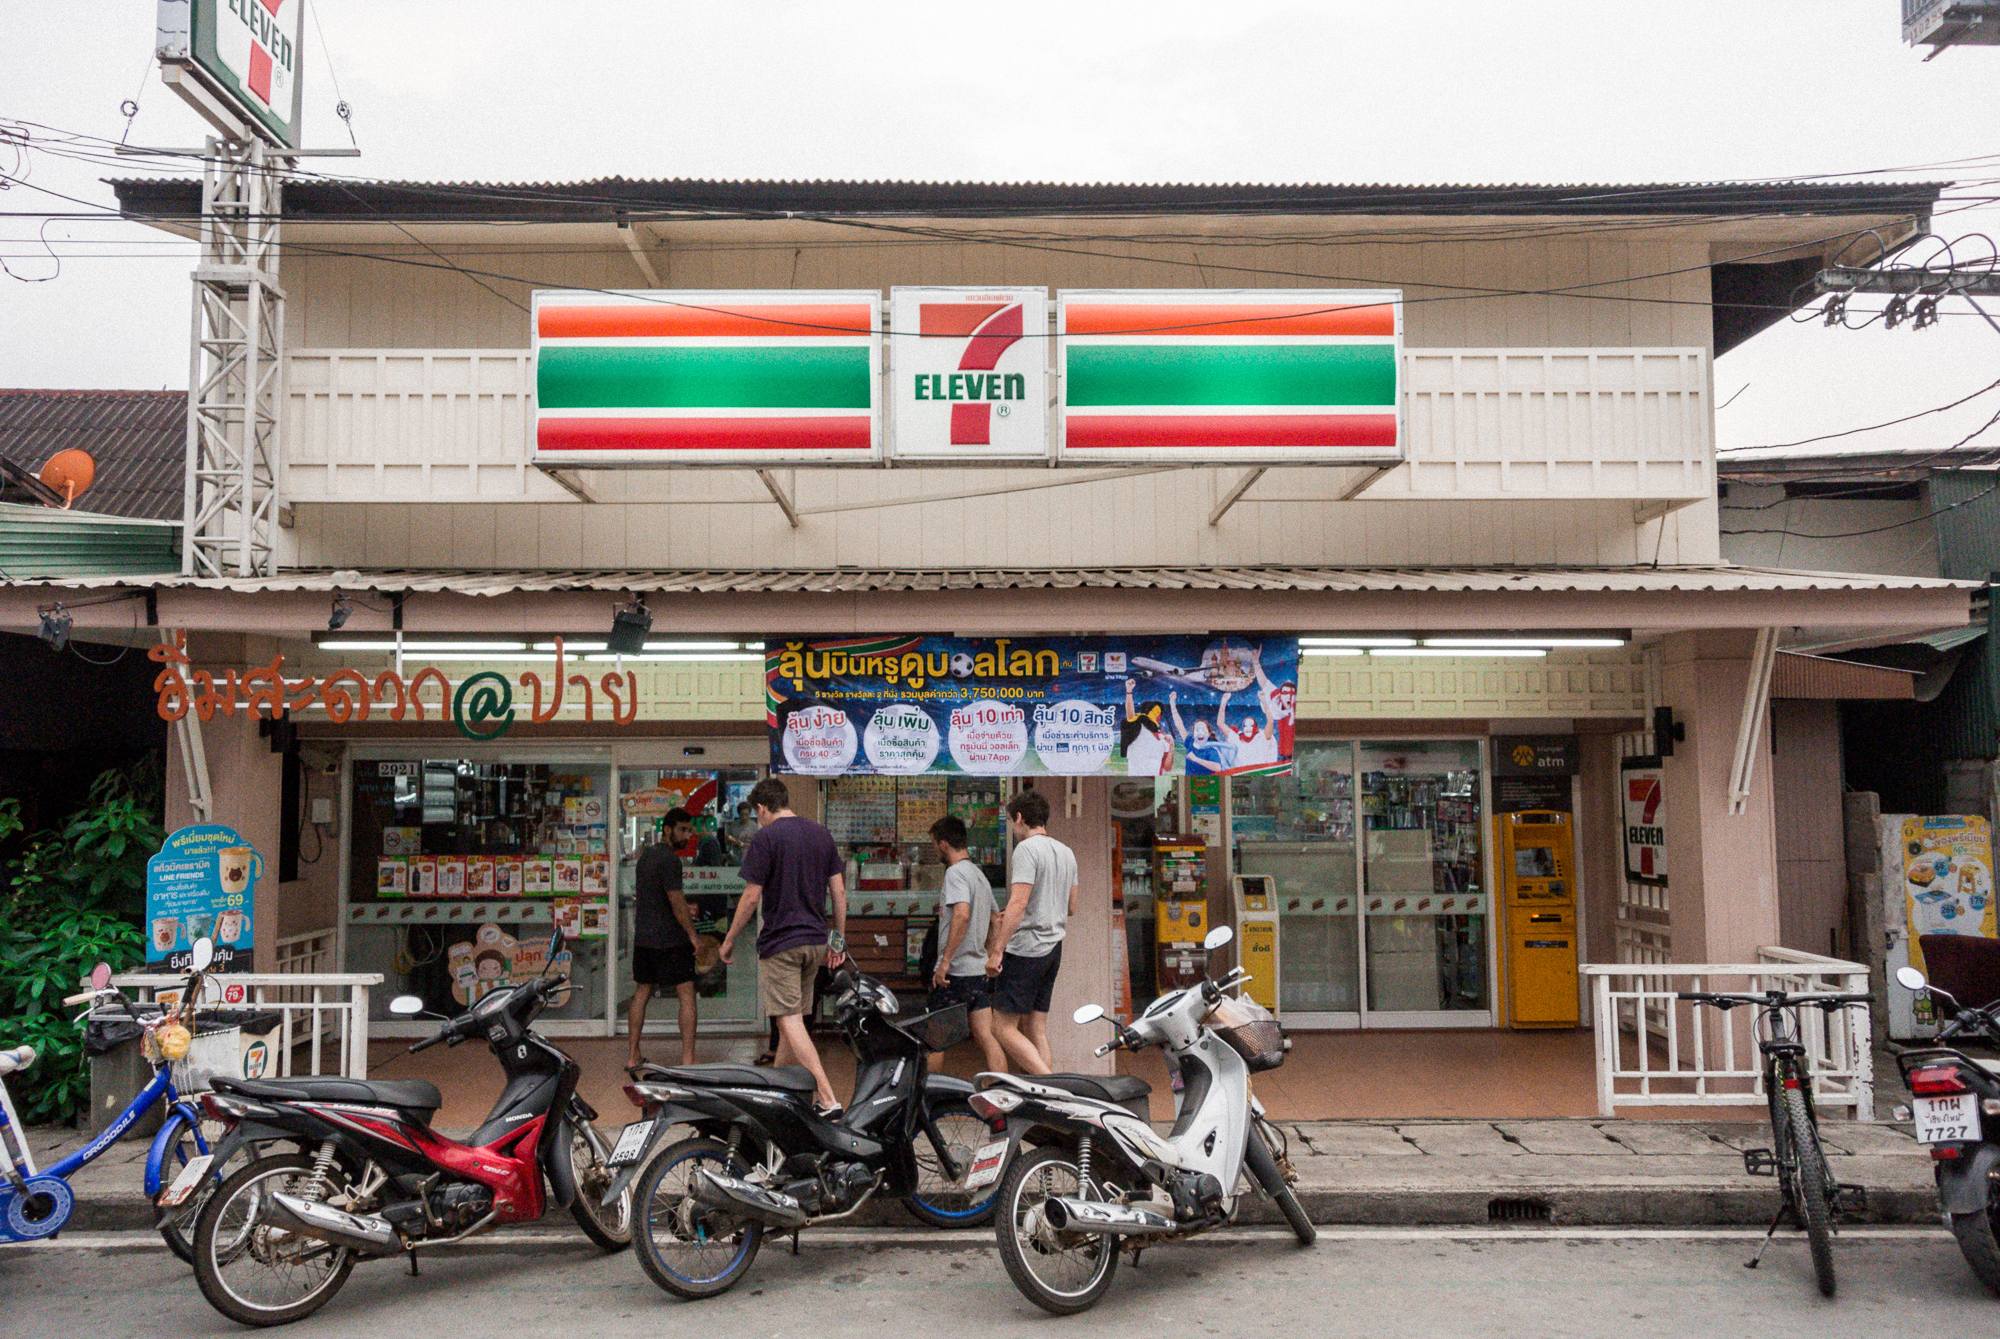 The 7 Eleven in Pai, Thailand.